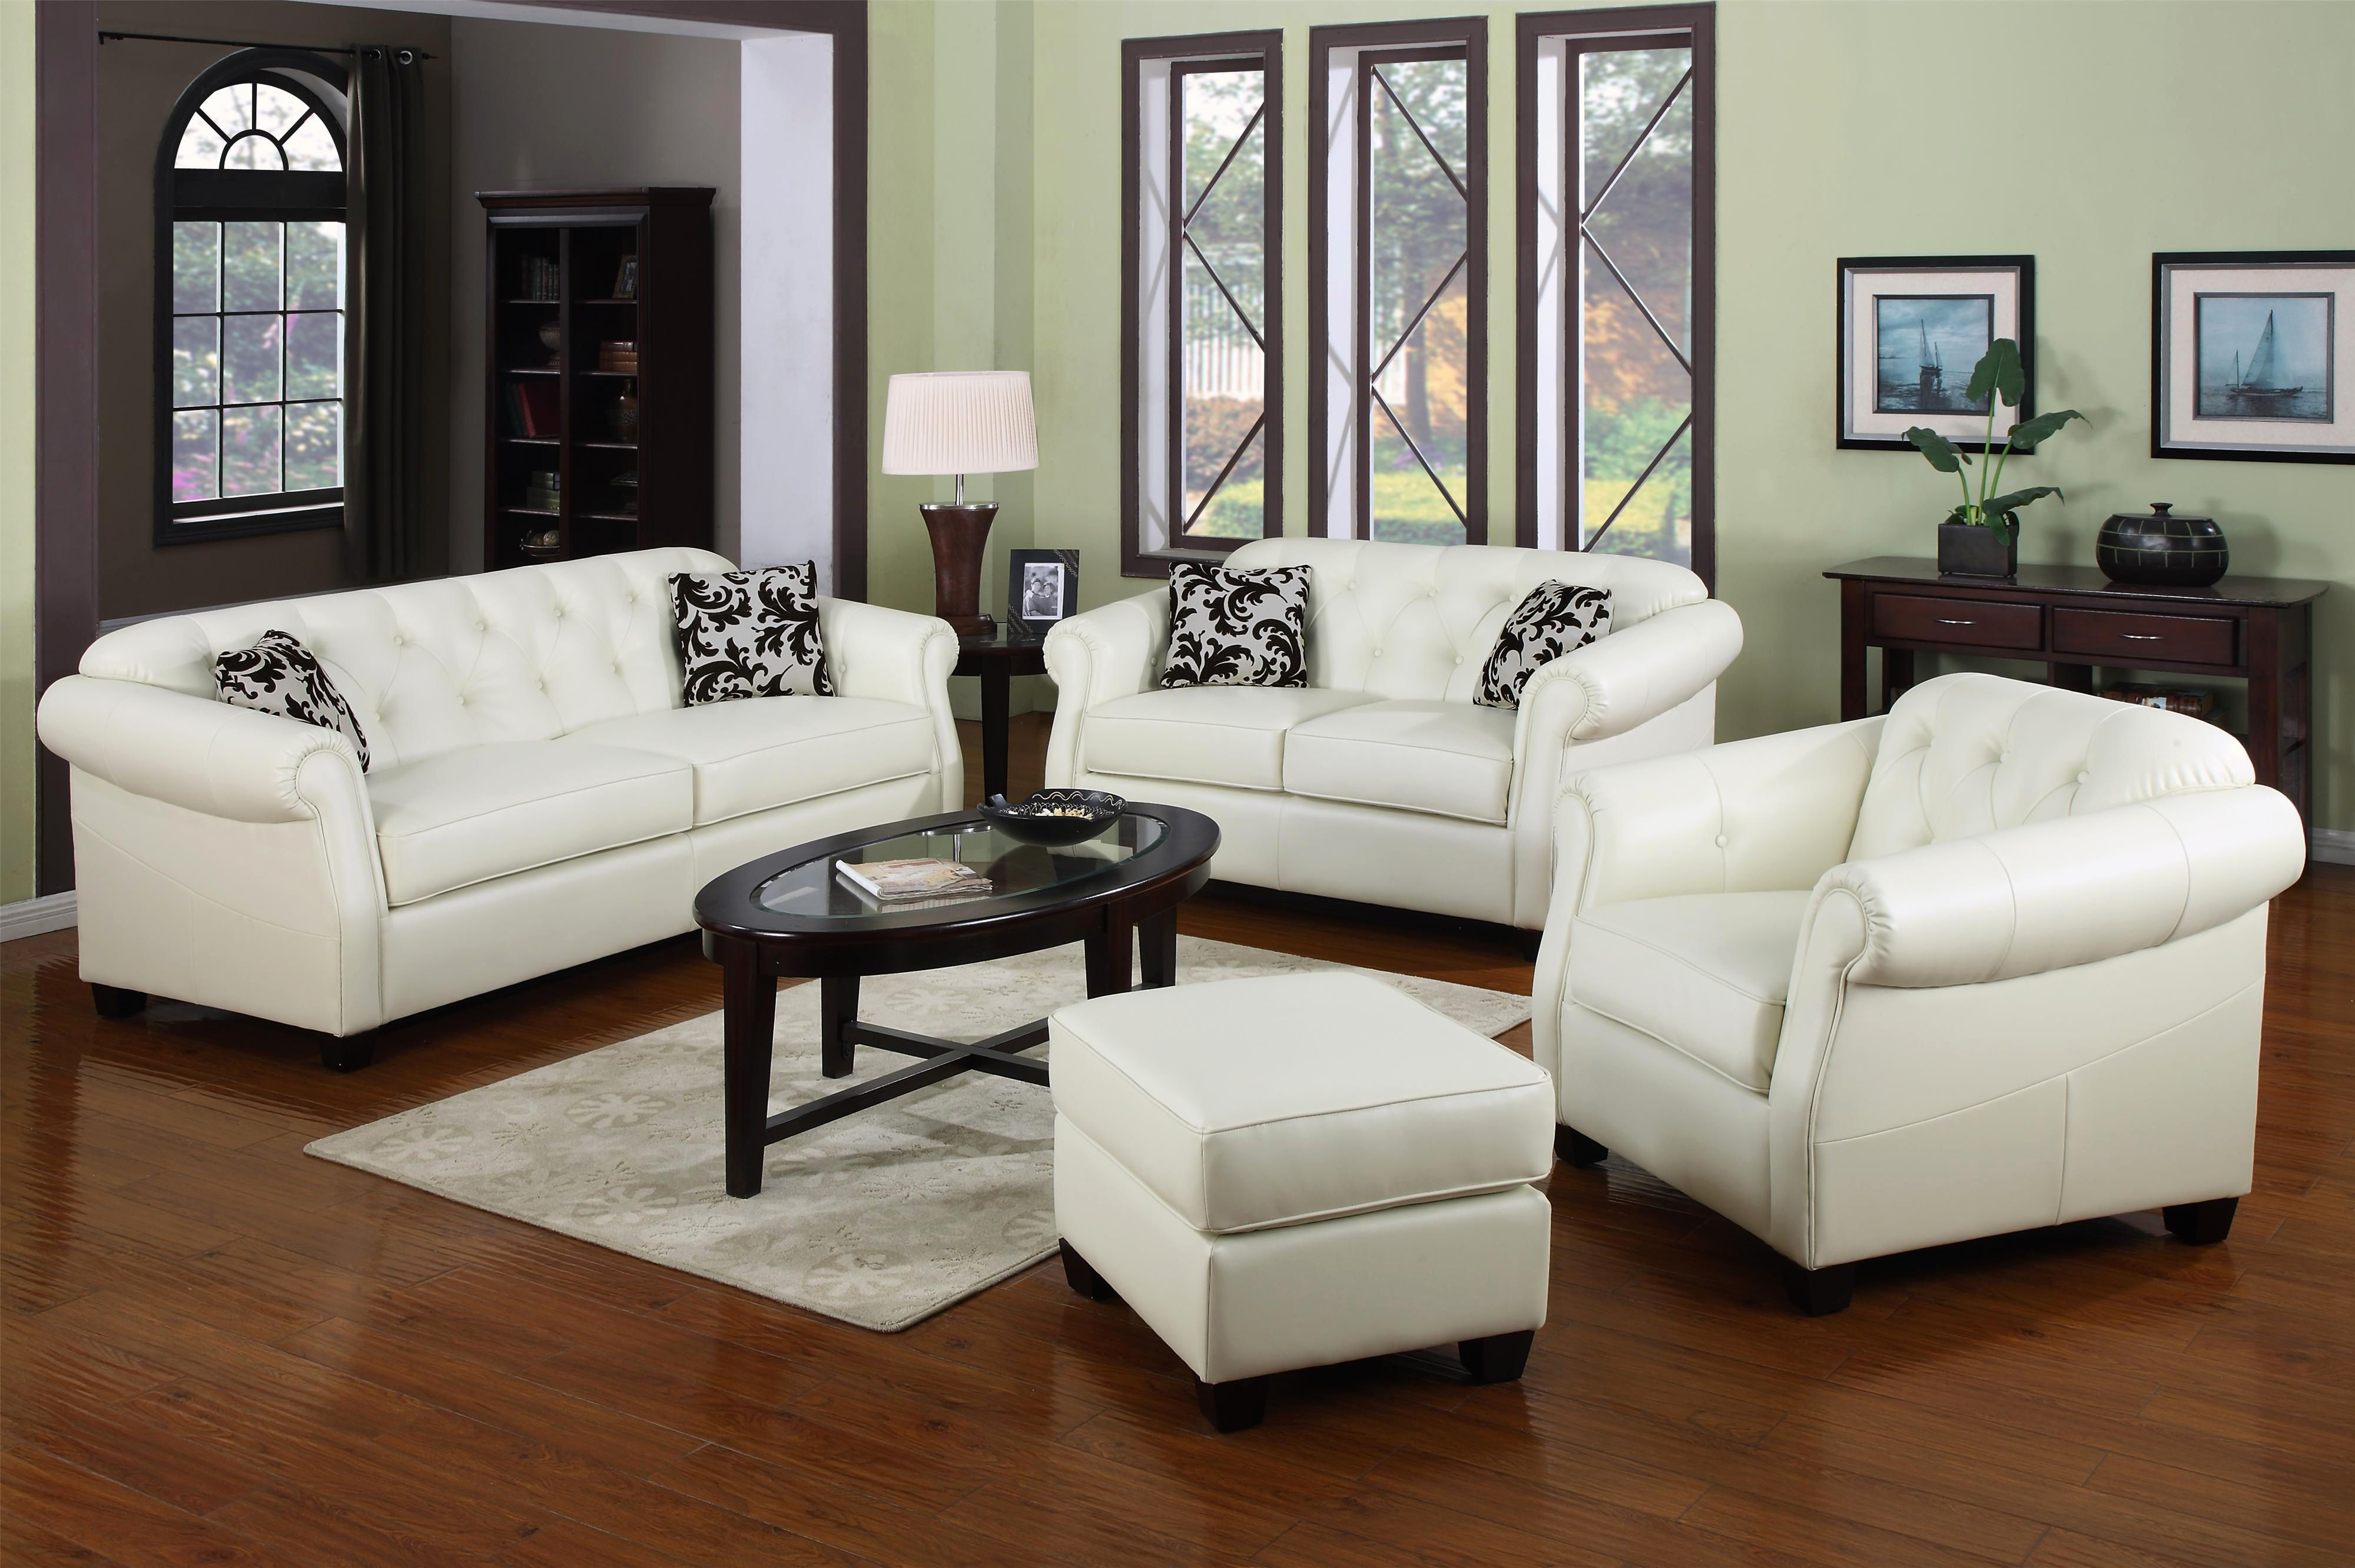 Unique 3 Piece White Leather Sofa Set Pics Furniture Fluffy White Leather Loveseat Off W Leather Sofa Living Room White Leather Sofas Leather Sofa And Loveseat